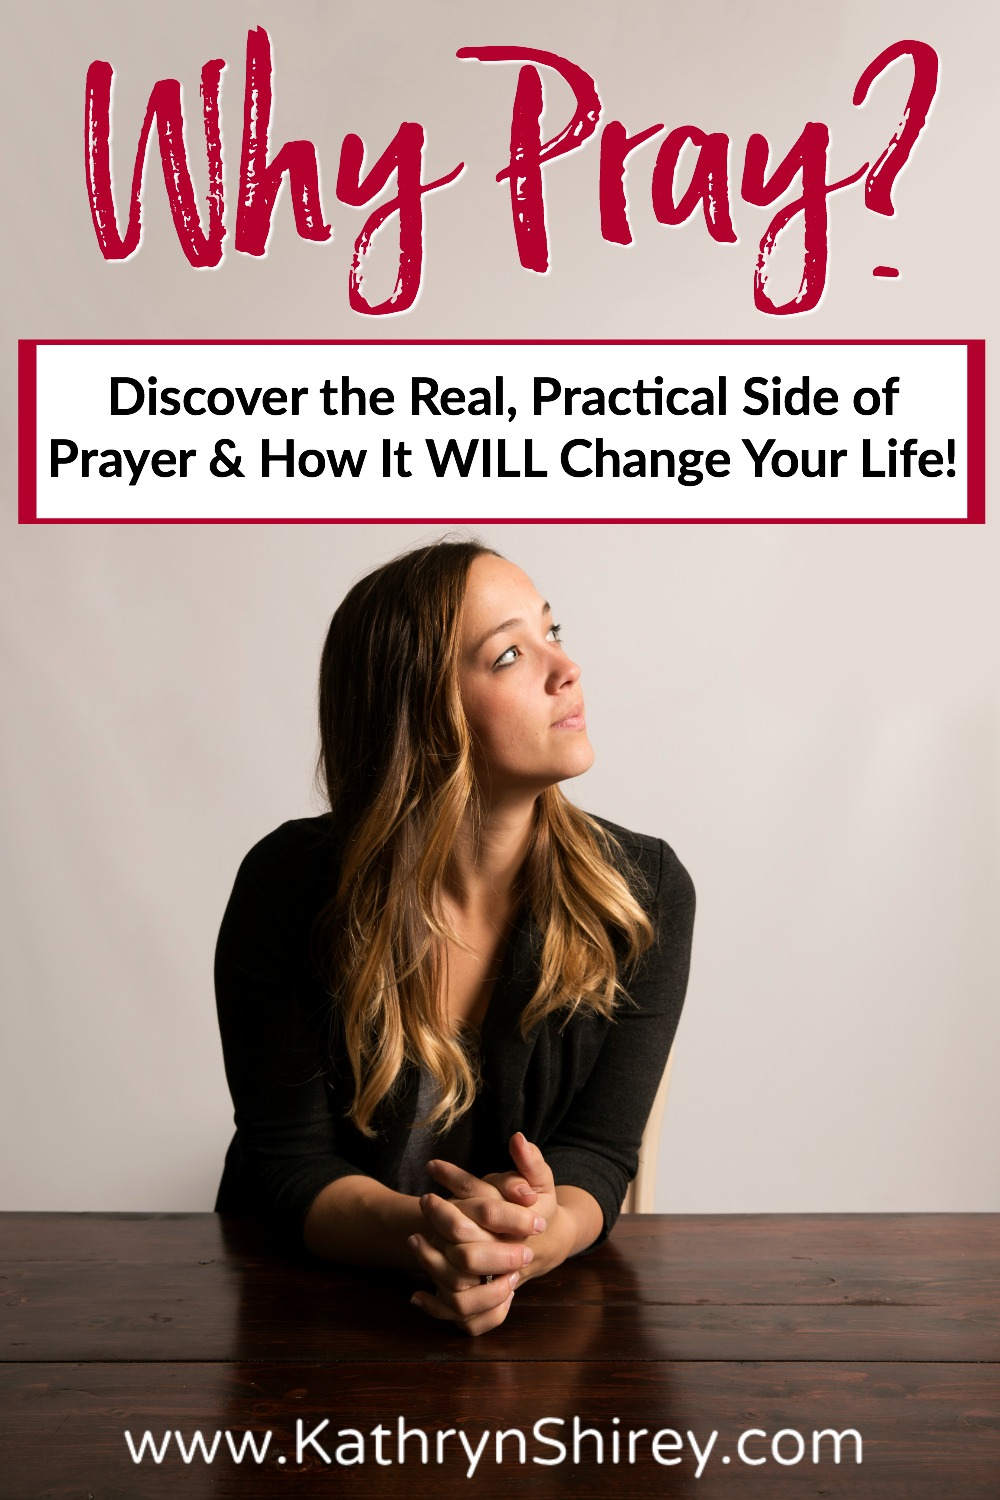 Why pray? What good does prayer do anyway? Come explore the practical side of prayer and open your heart to real ways it can change your life.  #Prayer #WhyPray